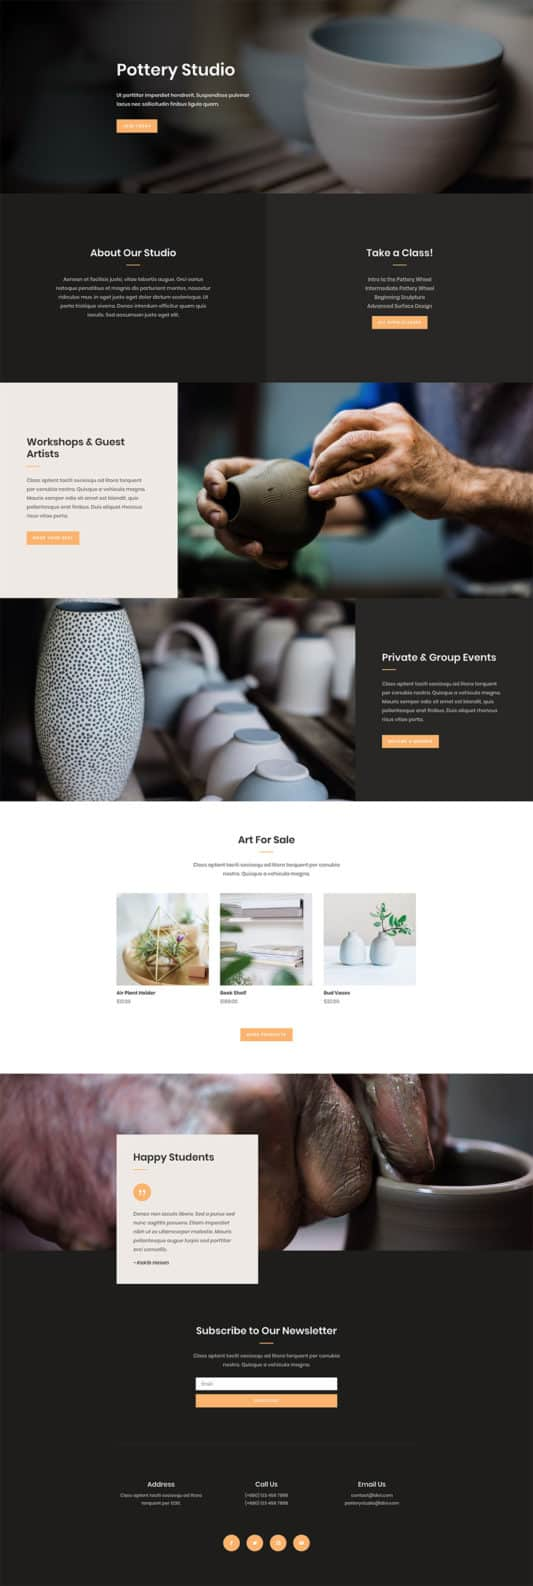 The Pottery Studio Page Style: Homepage Design 1